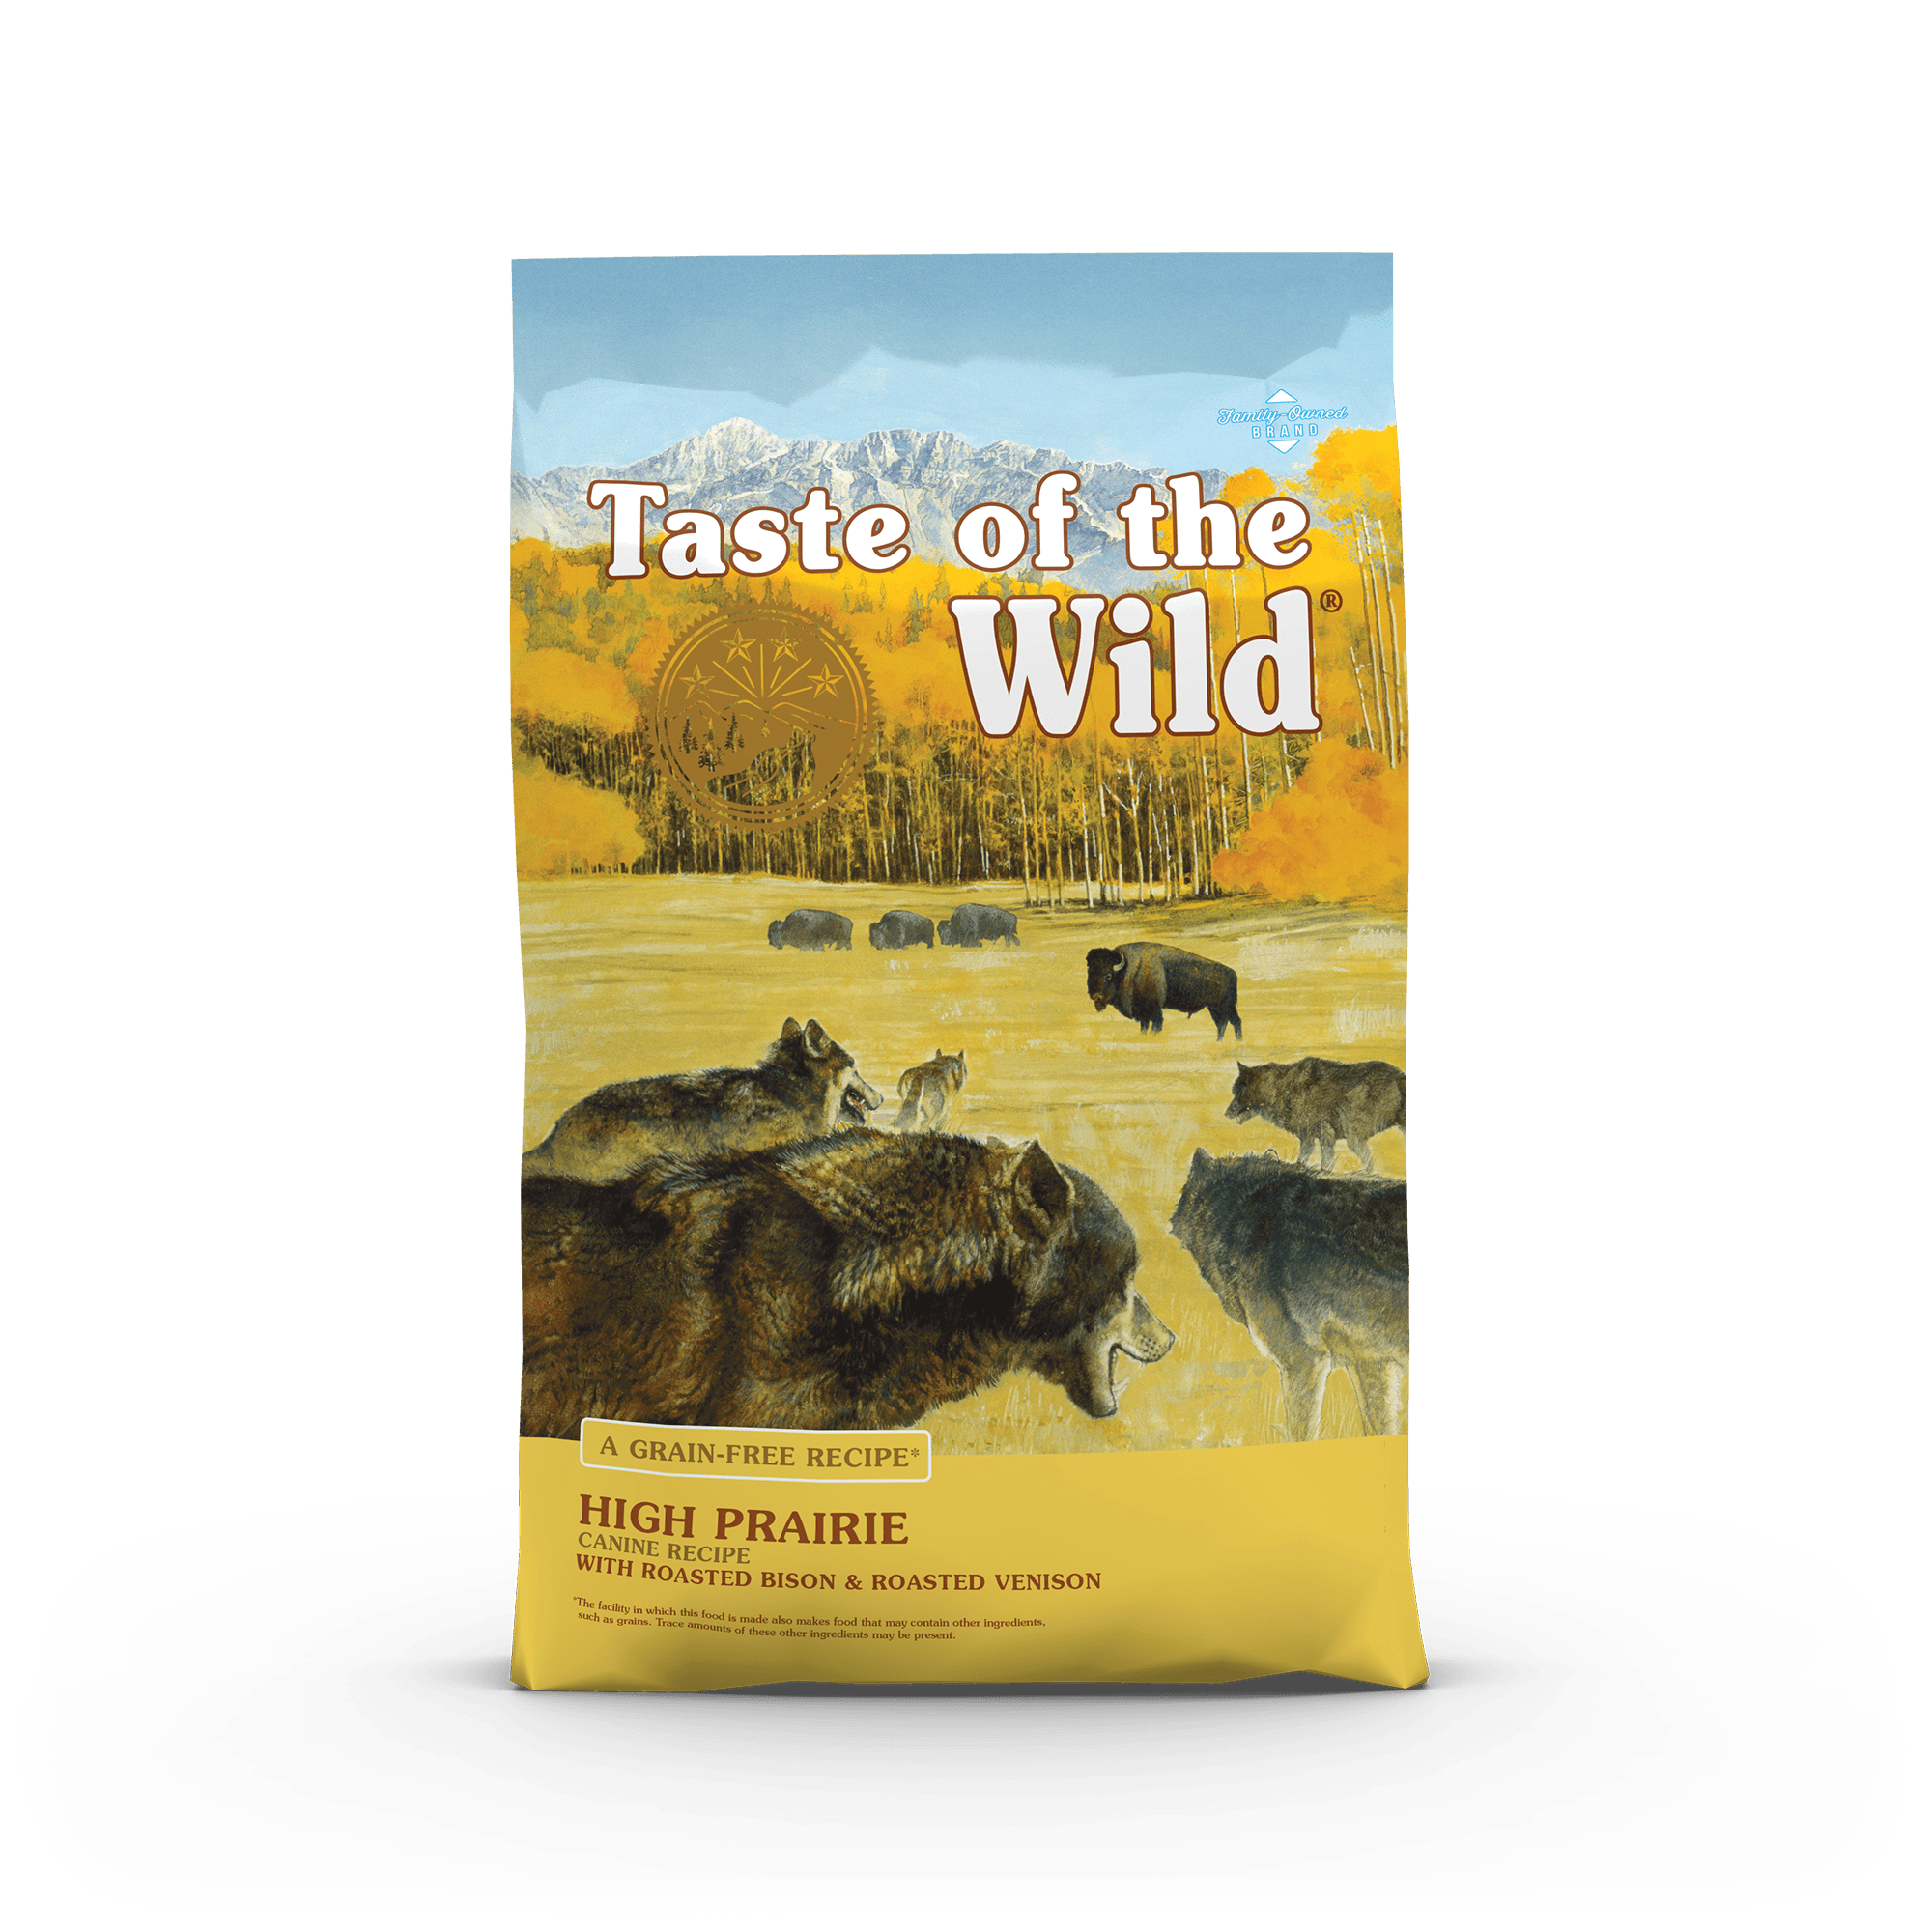 High Prairie Canine Recipe with Roasted Bison & Roasted Venison Image